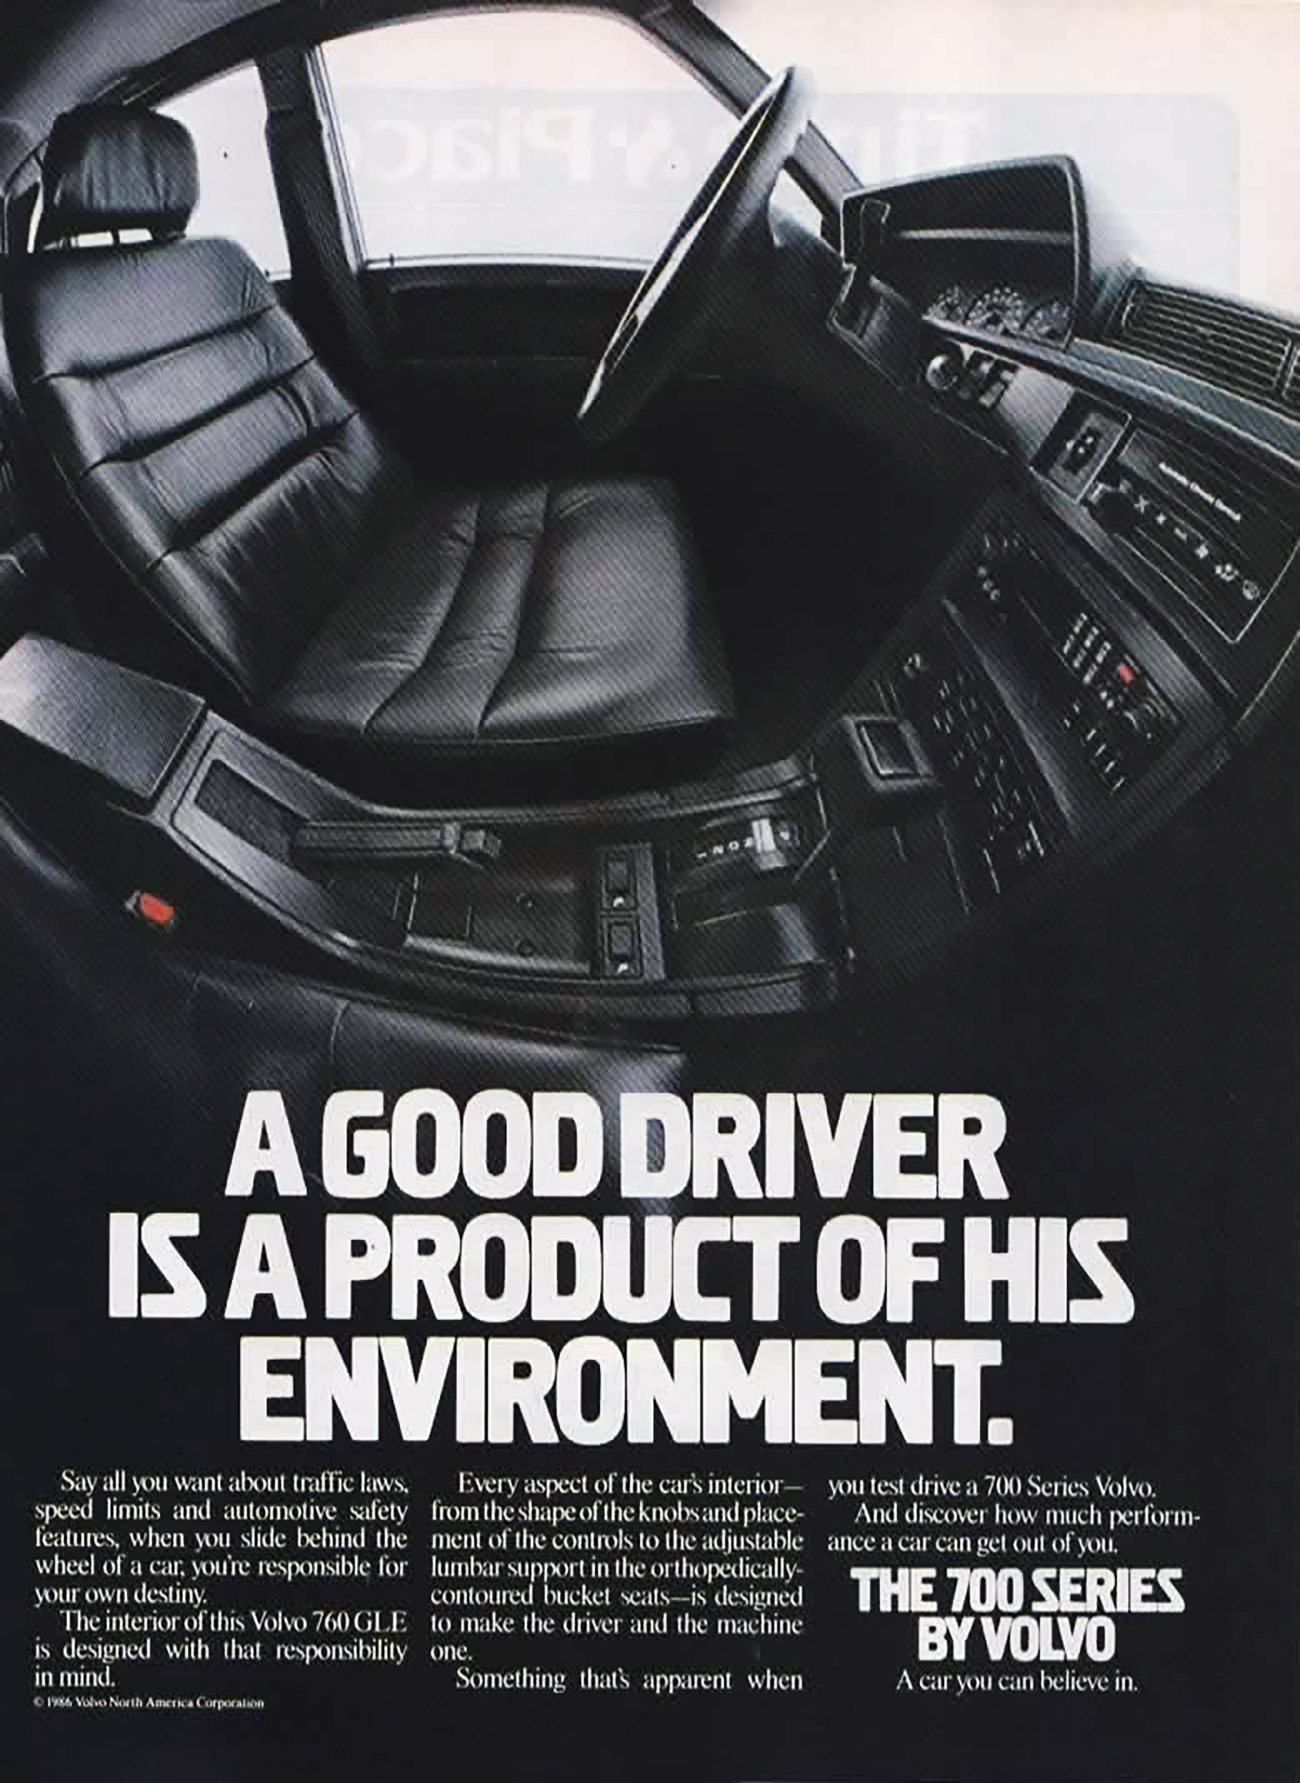 1987 Volvo 700 Series Ad, Luxury Car Ads from 1987